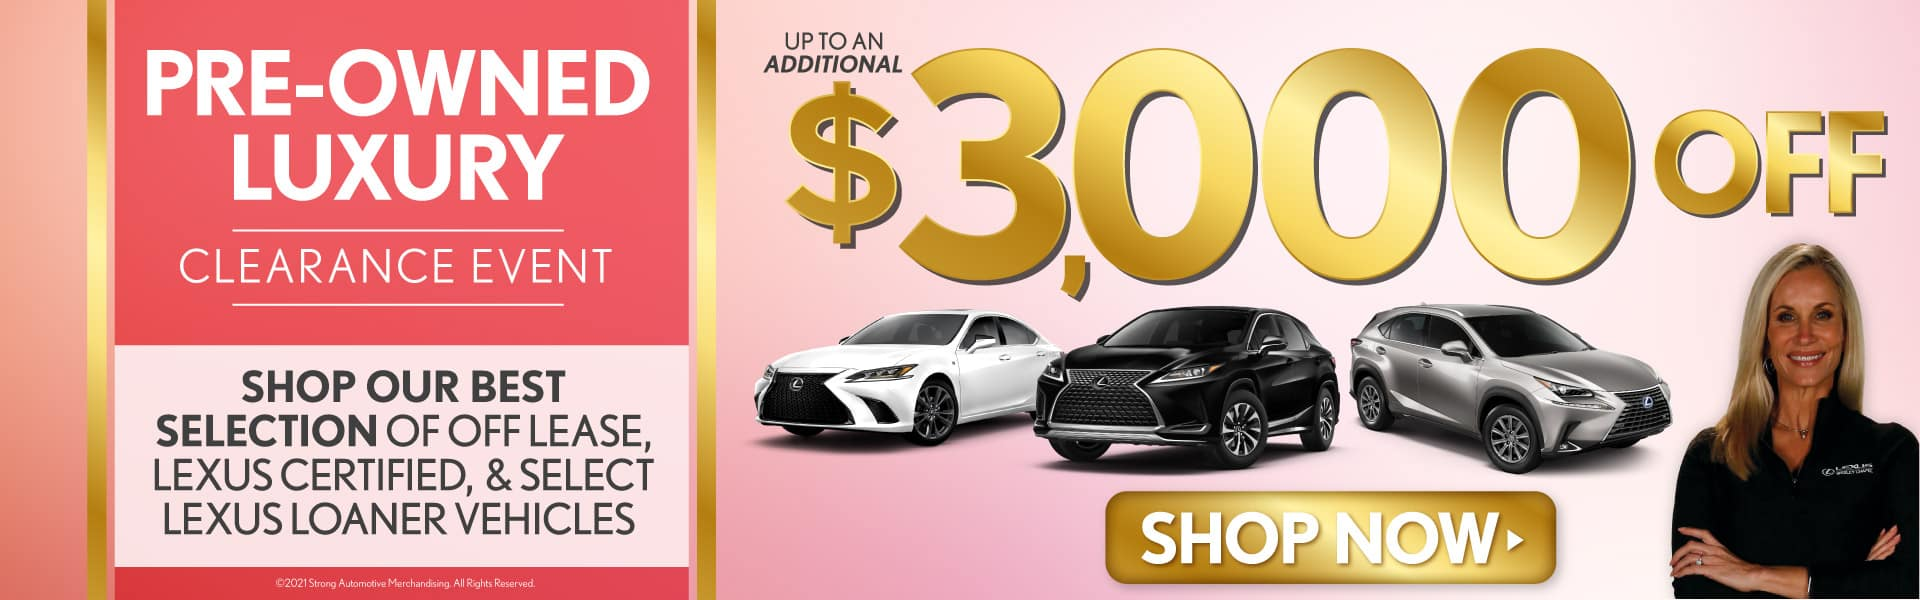 Pre-Owned Luxury Clearance Event - Up To $3000 Off Select Used Lexus Vehicles - SHOP NOW